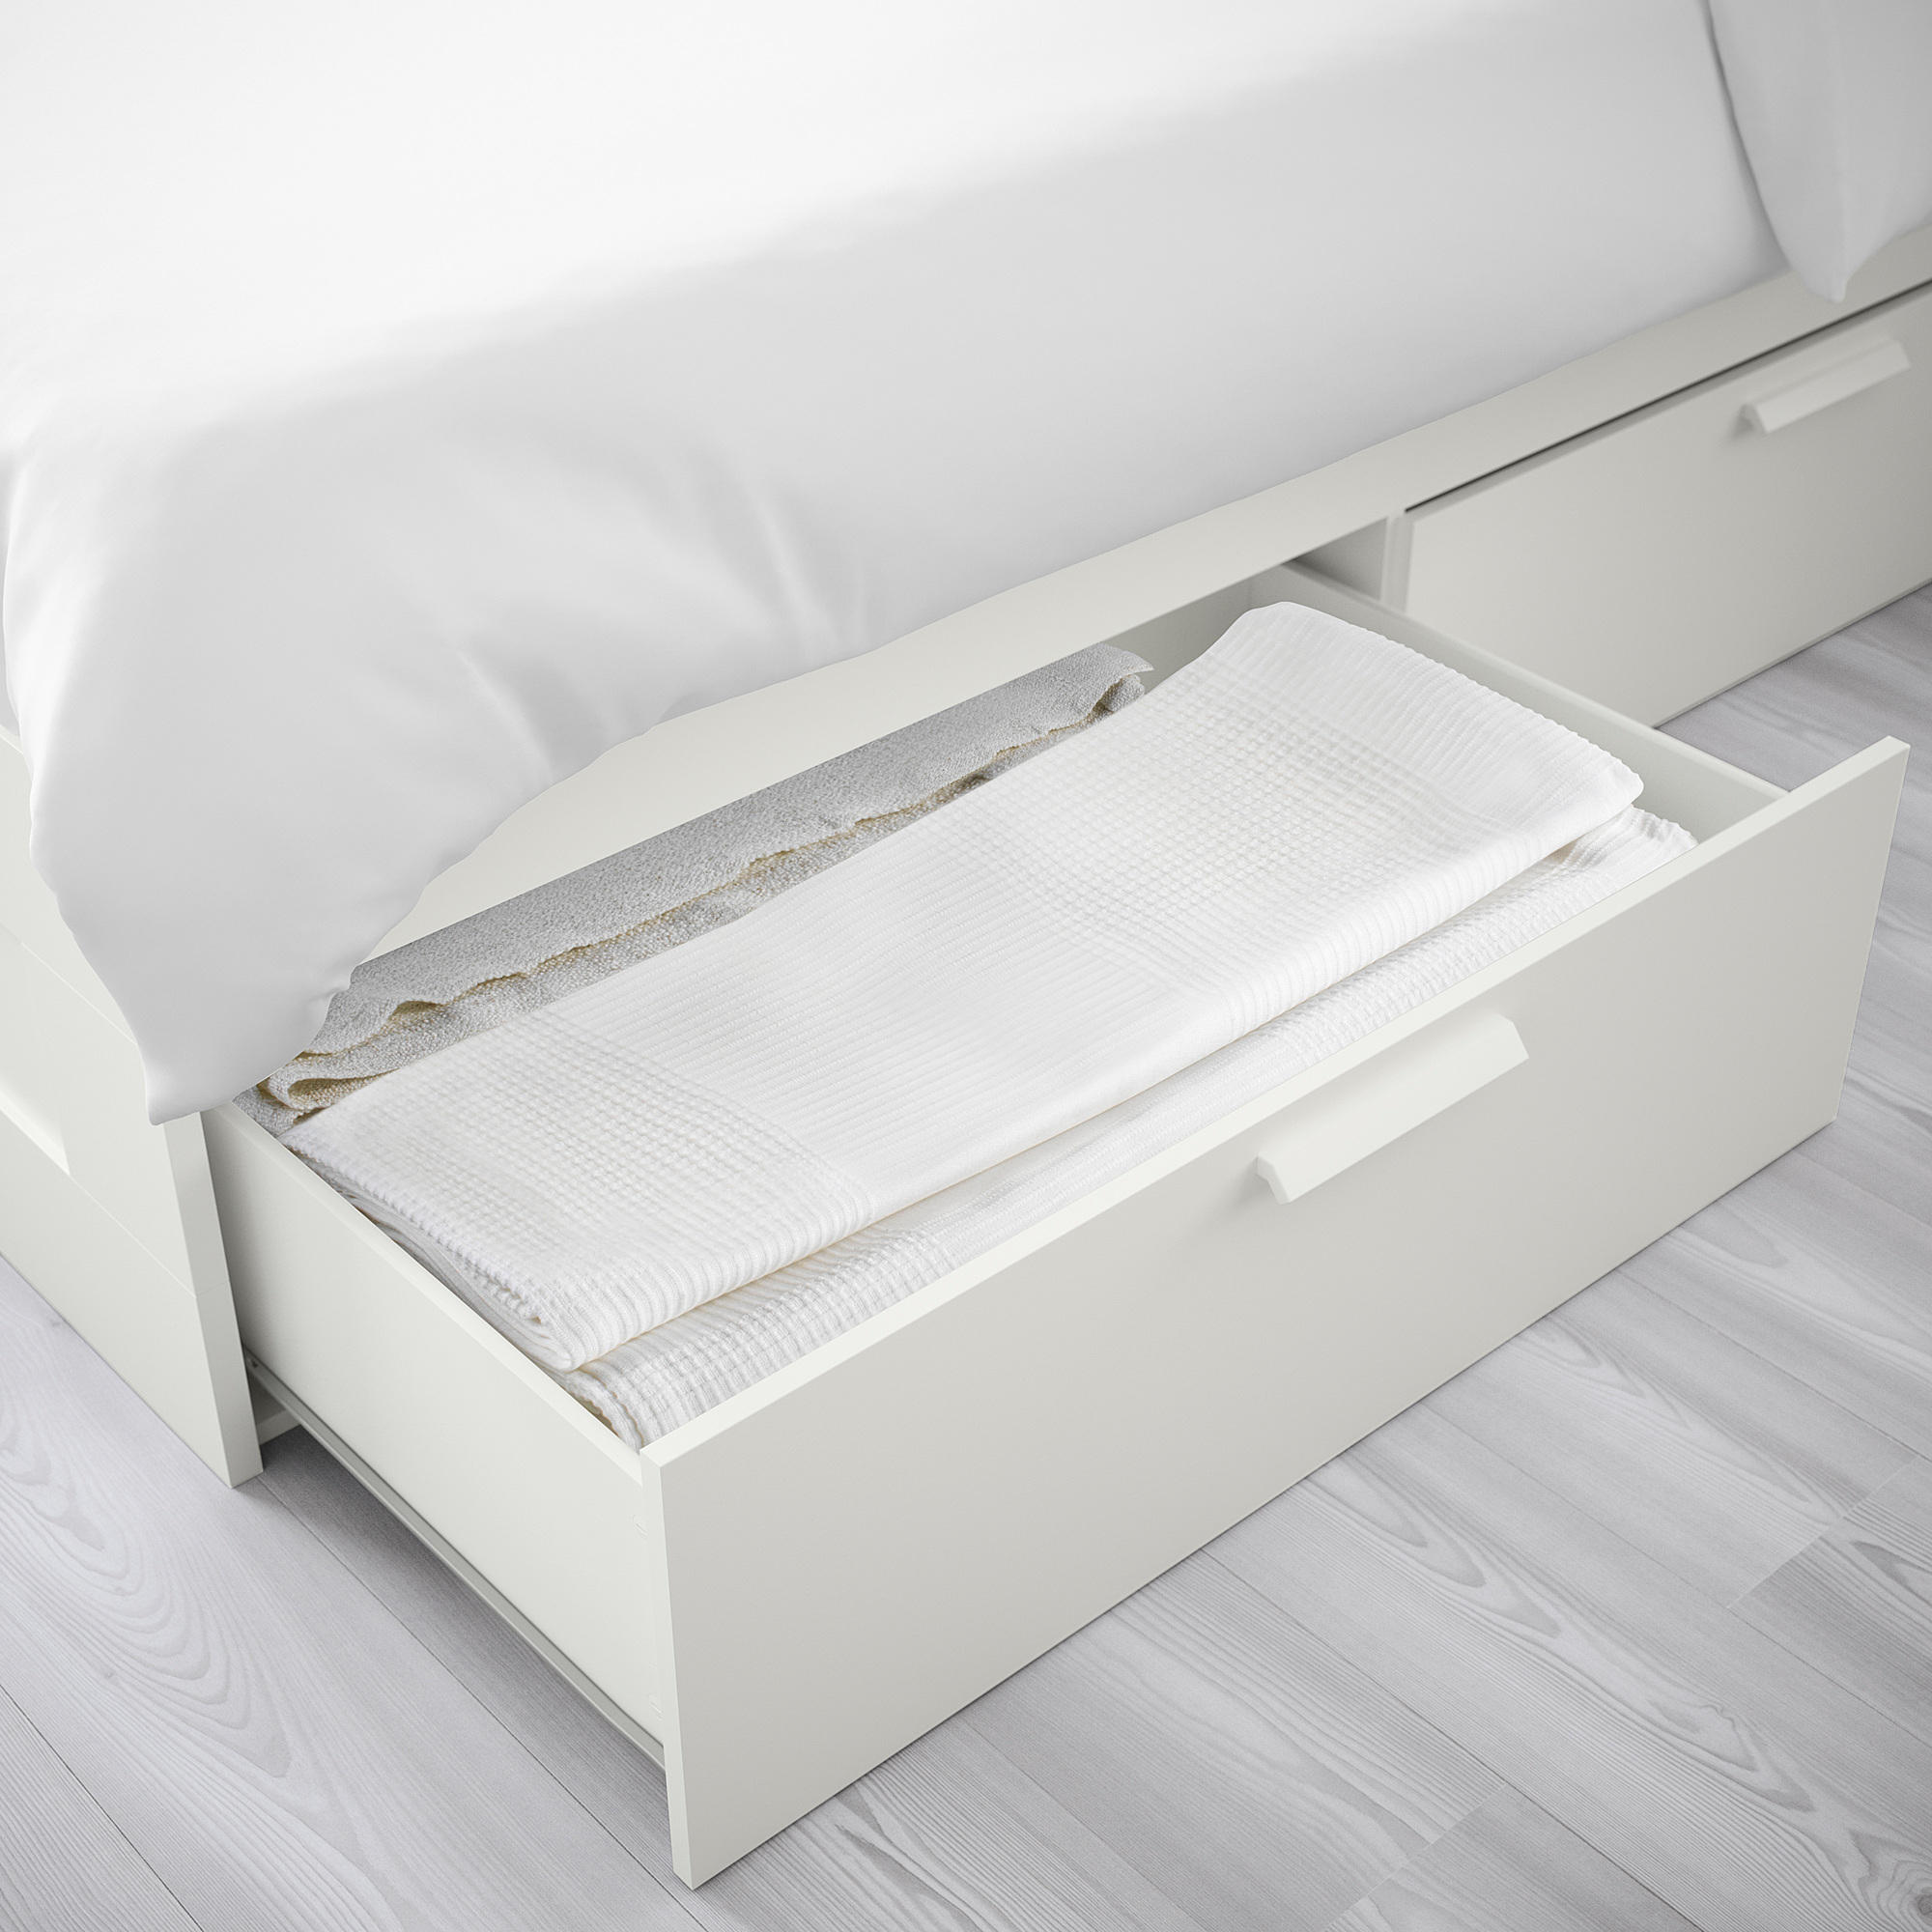 Brimnes Bed Frame With Storage White Lonset Ikea Indonesia,Cheap Baby Shower Decorations Girl